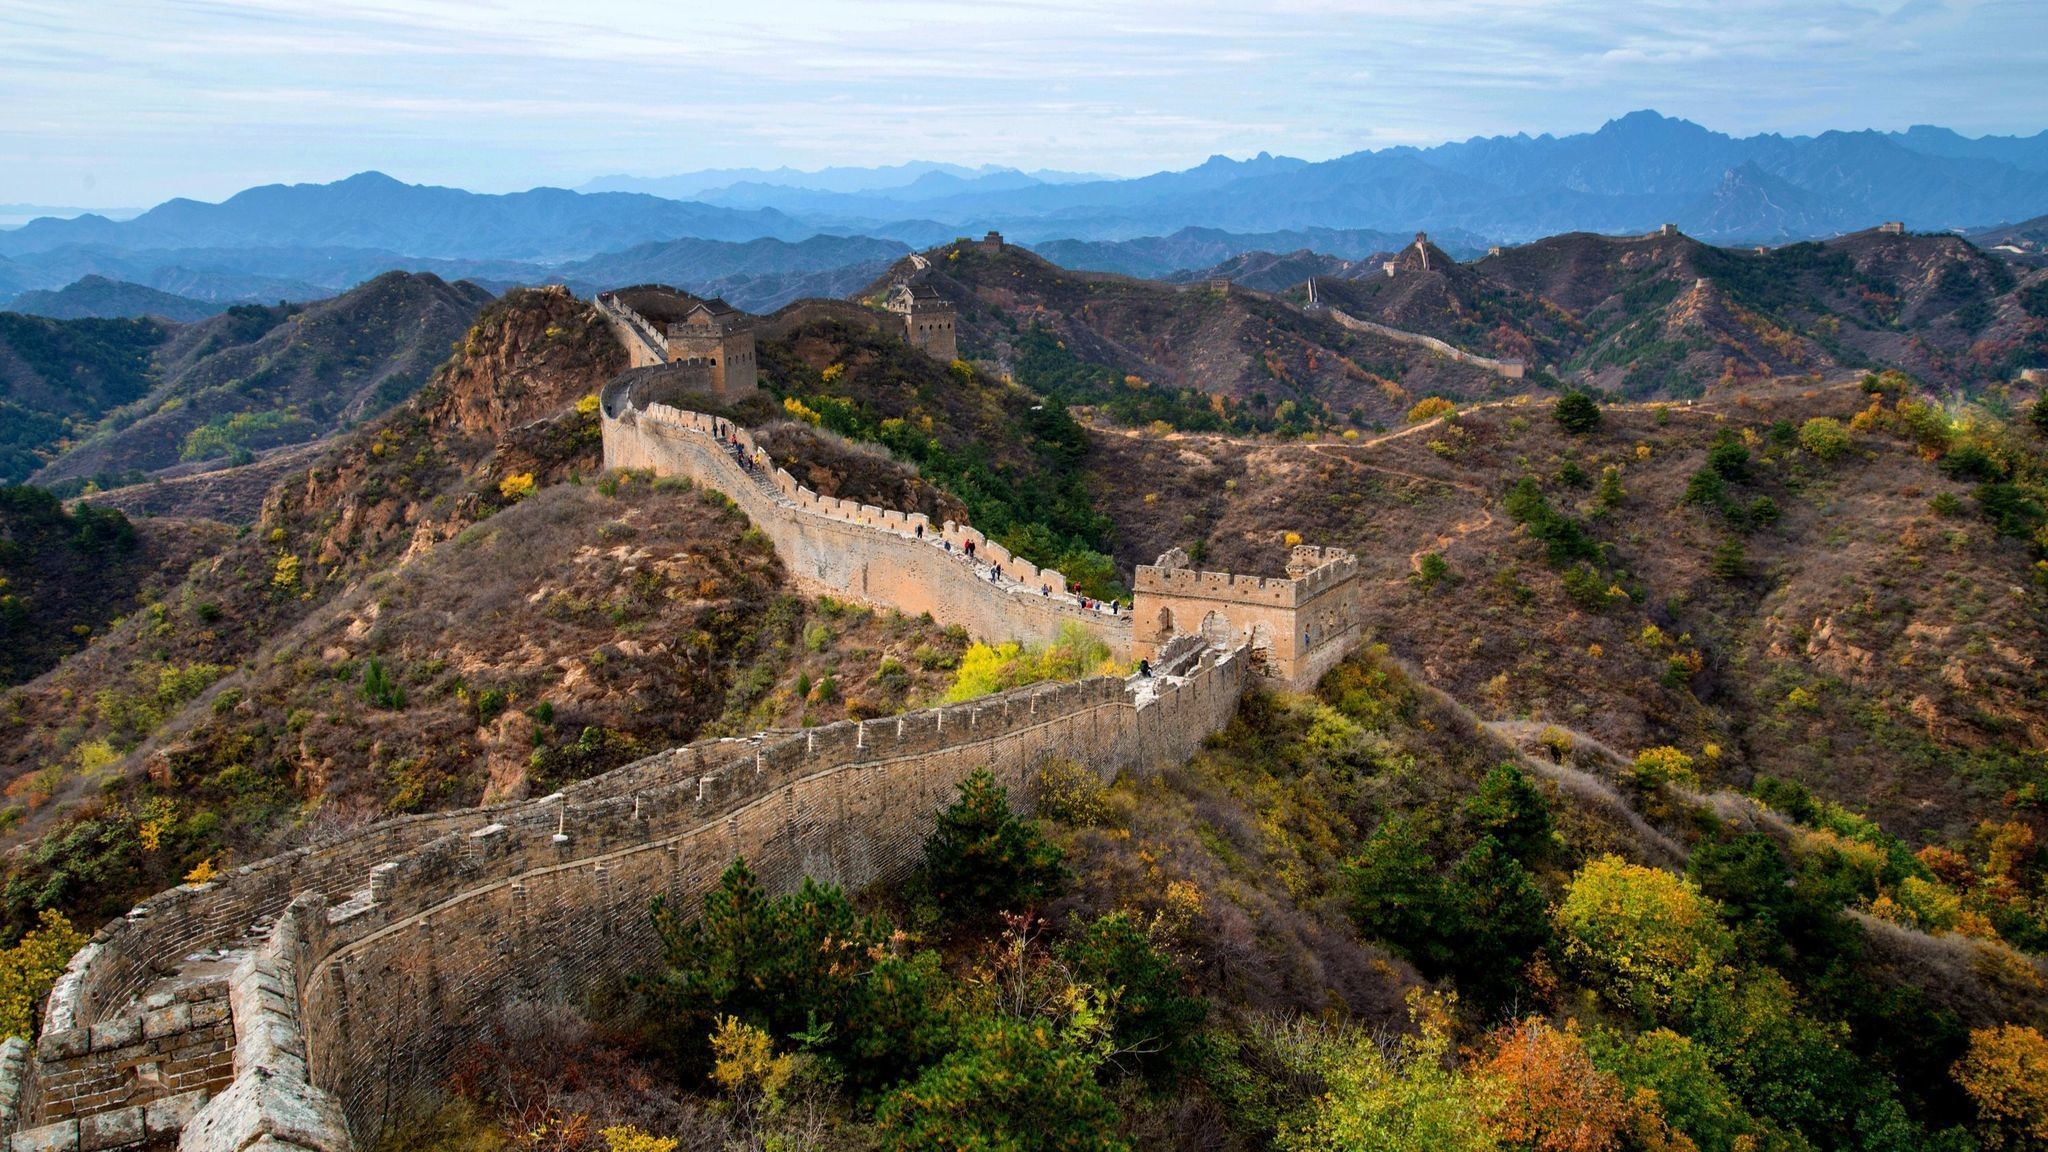 The Great Wall of China Wallpaper 51 images 2048x1152